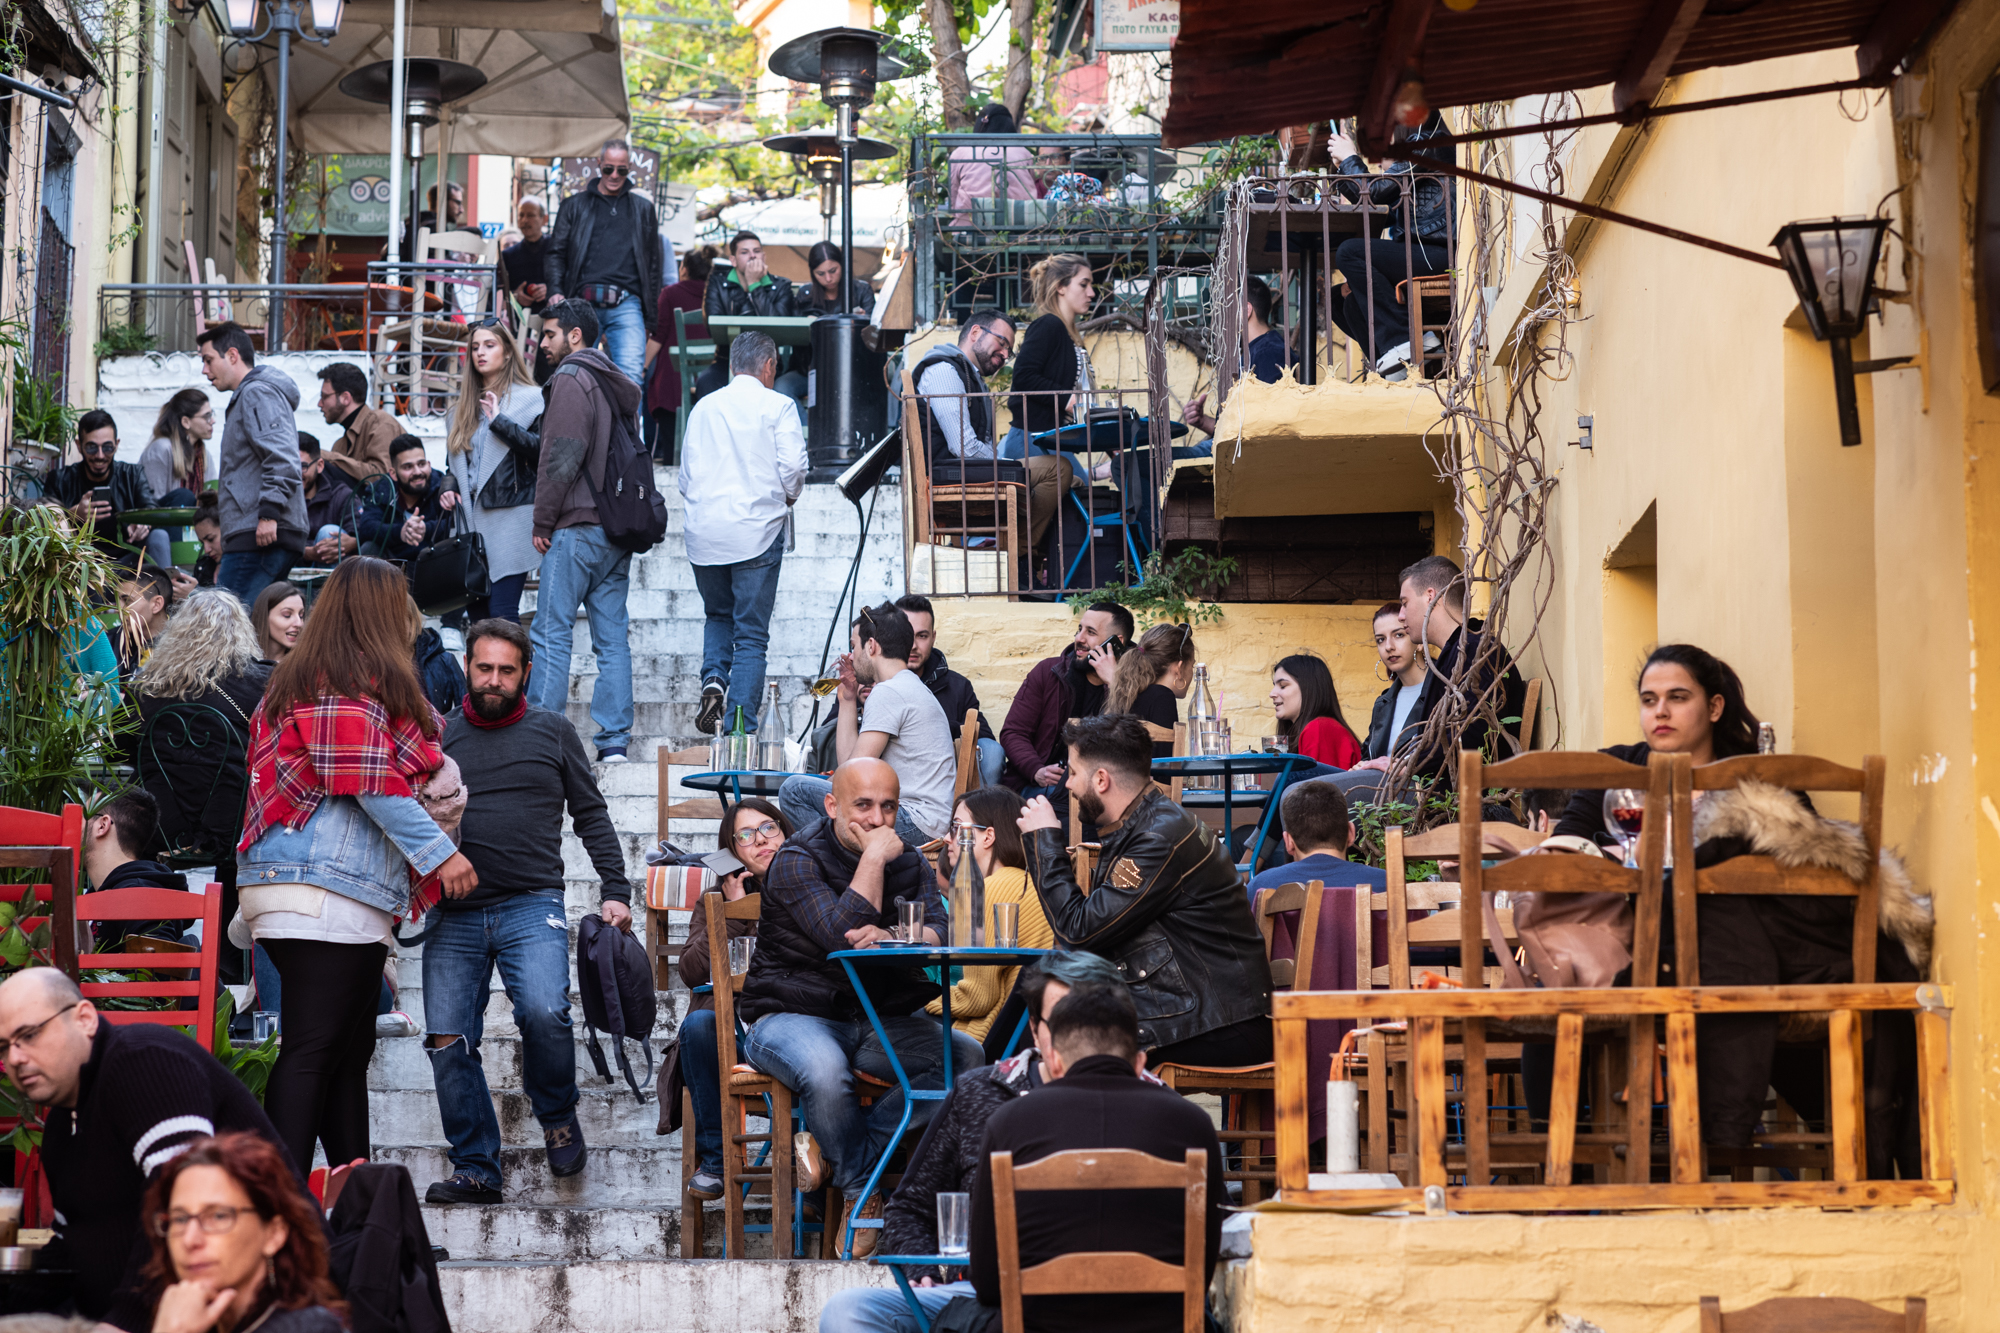 The cafes on the steps of Plaka